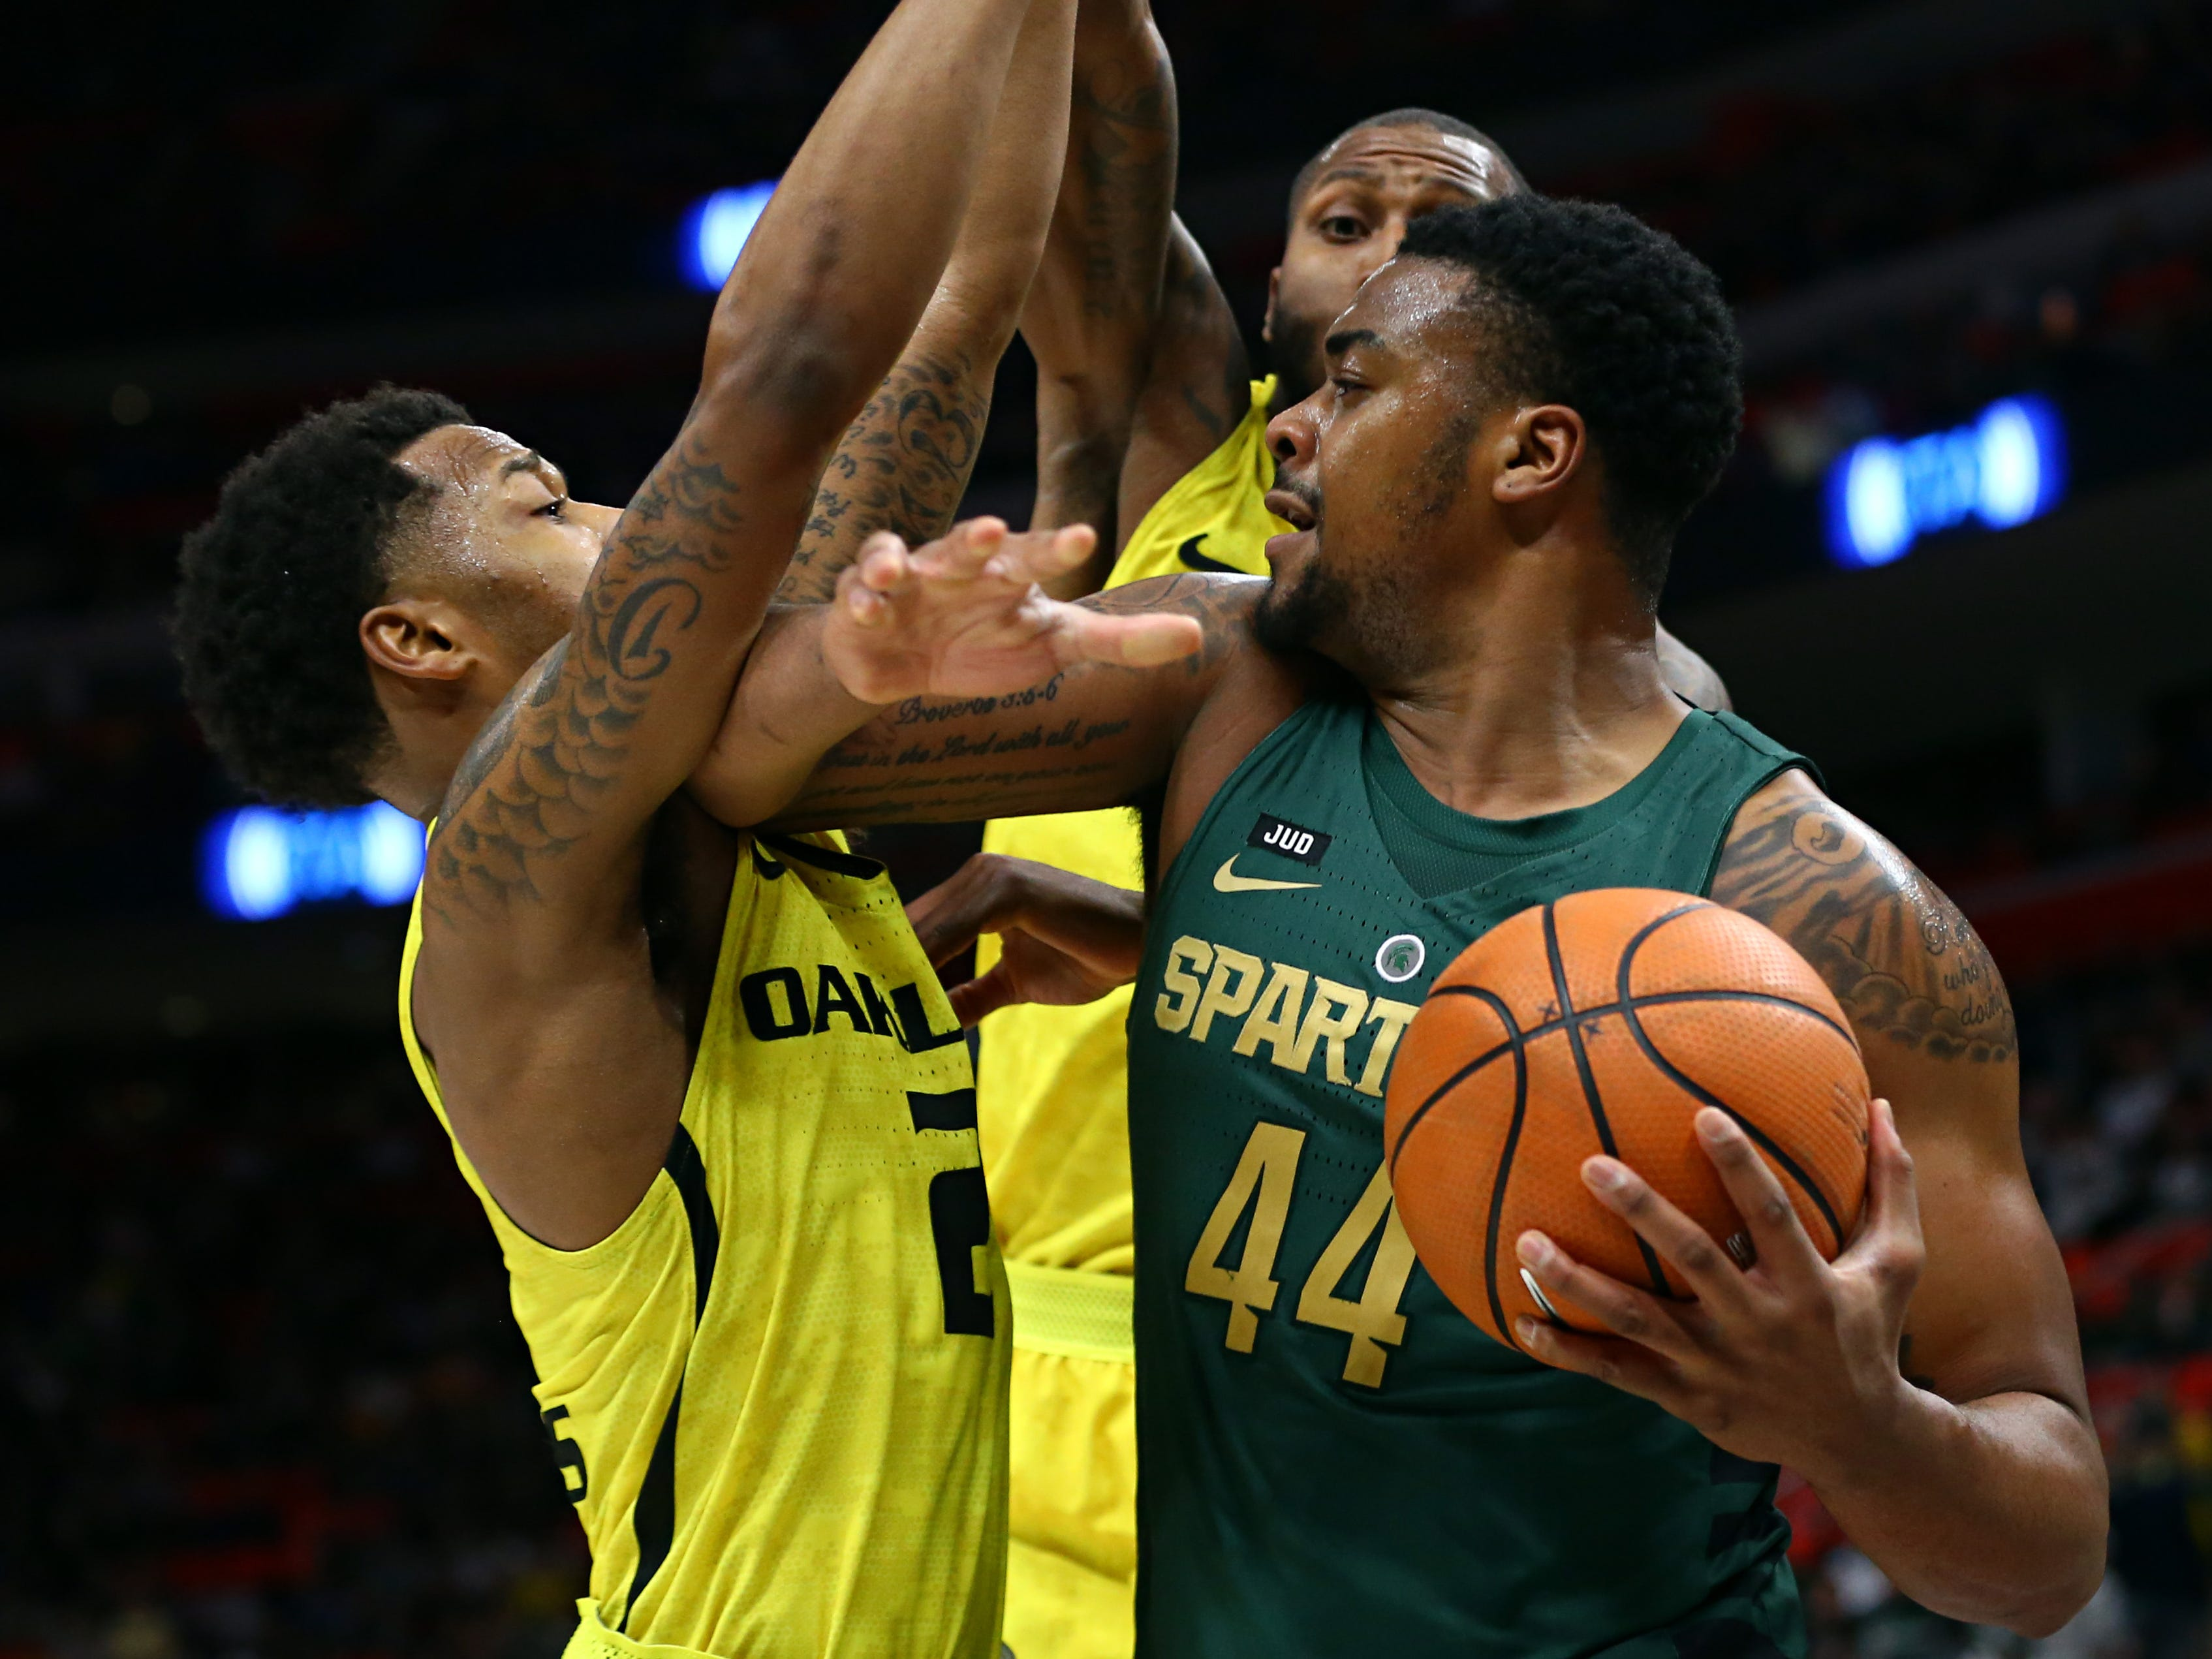 Oakland guard Nick Daniels, left, fouls Michigan State forward Nick Ward in the second half at Little Caesars Arena.   Aaron Doster/USA TODAY Sports Dec 16, 2017; Detroit, MI, USA; Oakland Golden Grizzlies guard Nick Daniels (2) fouls Michigan State Spartans forward Nick Ward (44) in the second half at Little Caesars Arena. Mandatory Credit: Aaron Doster-USA TODAY Sports